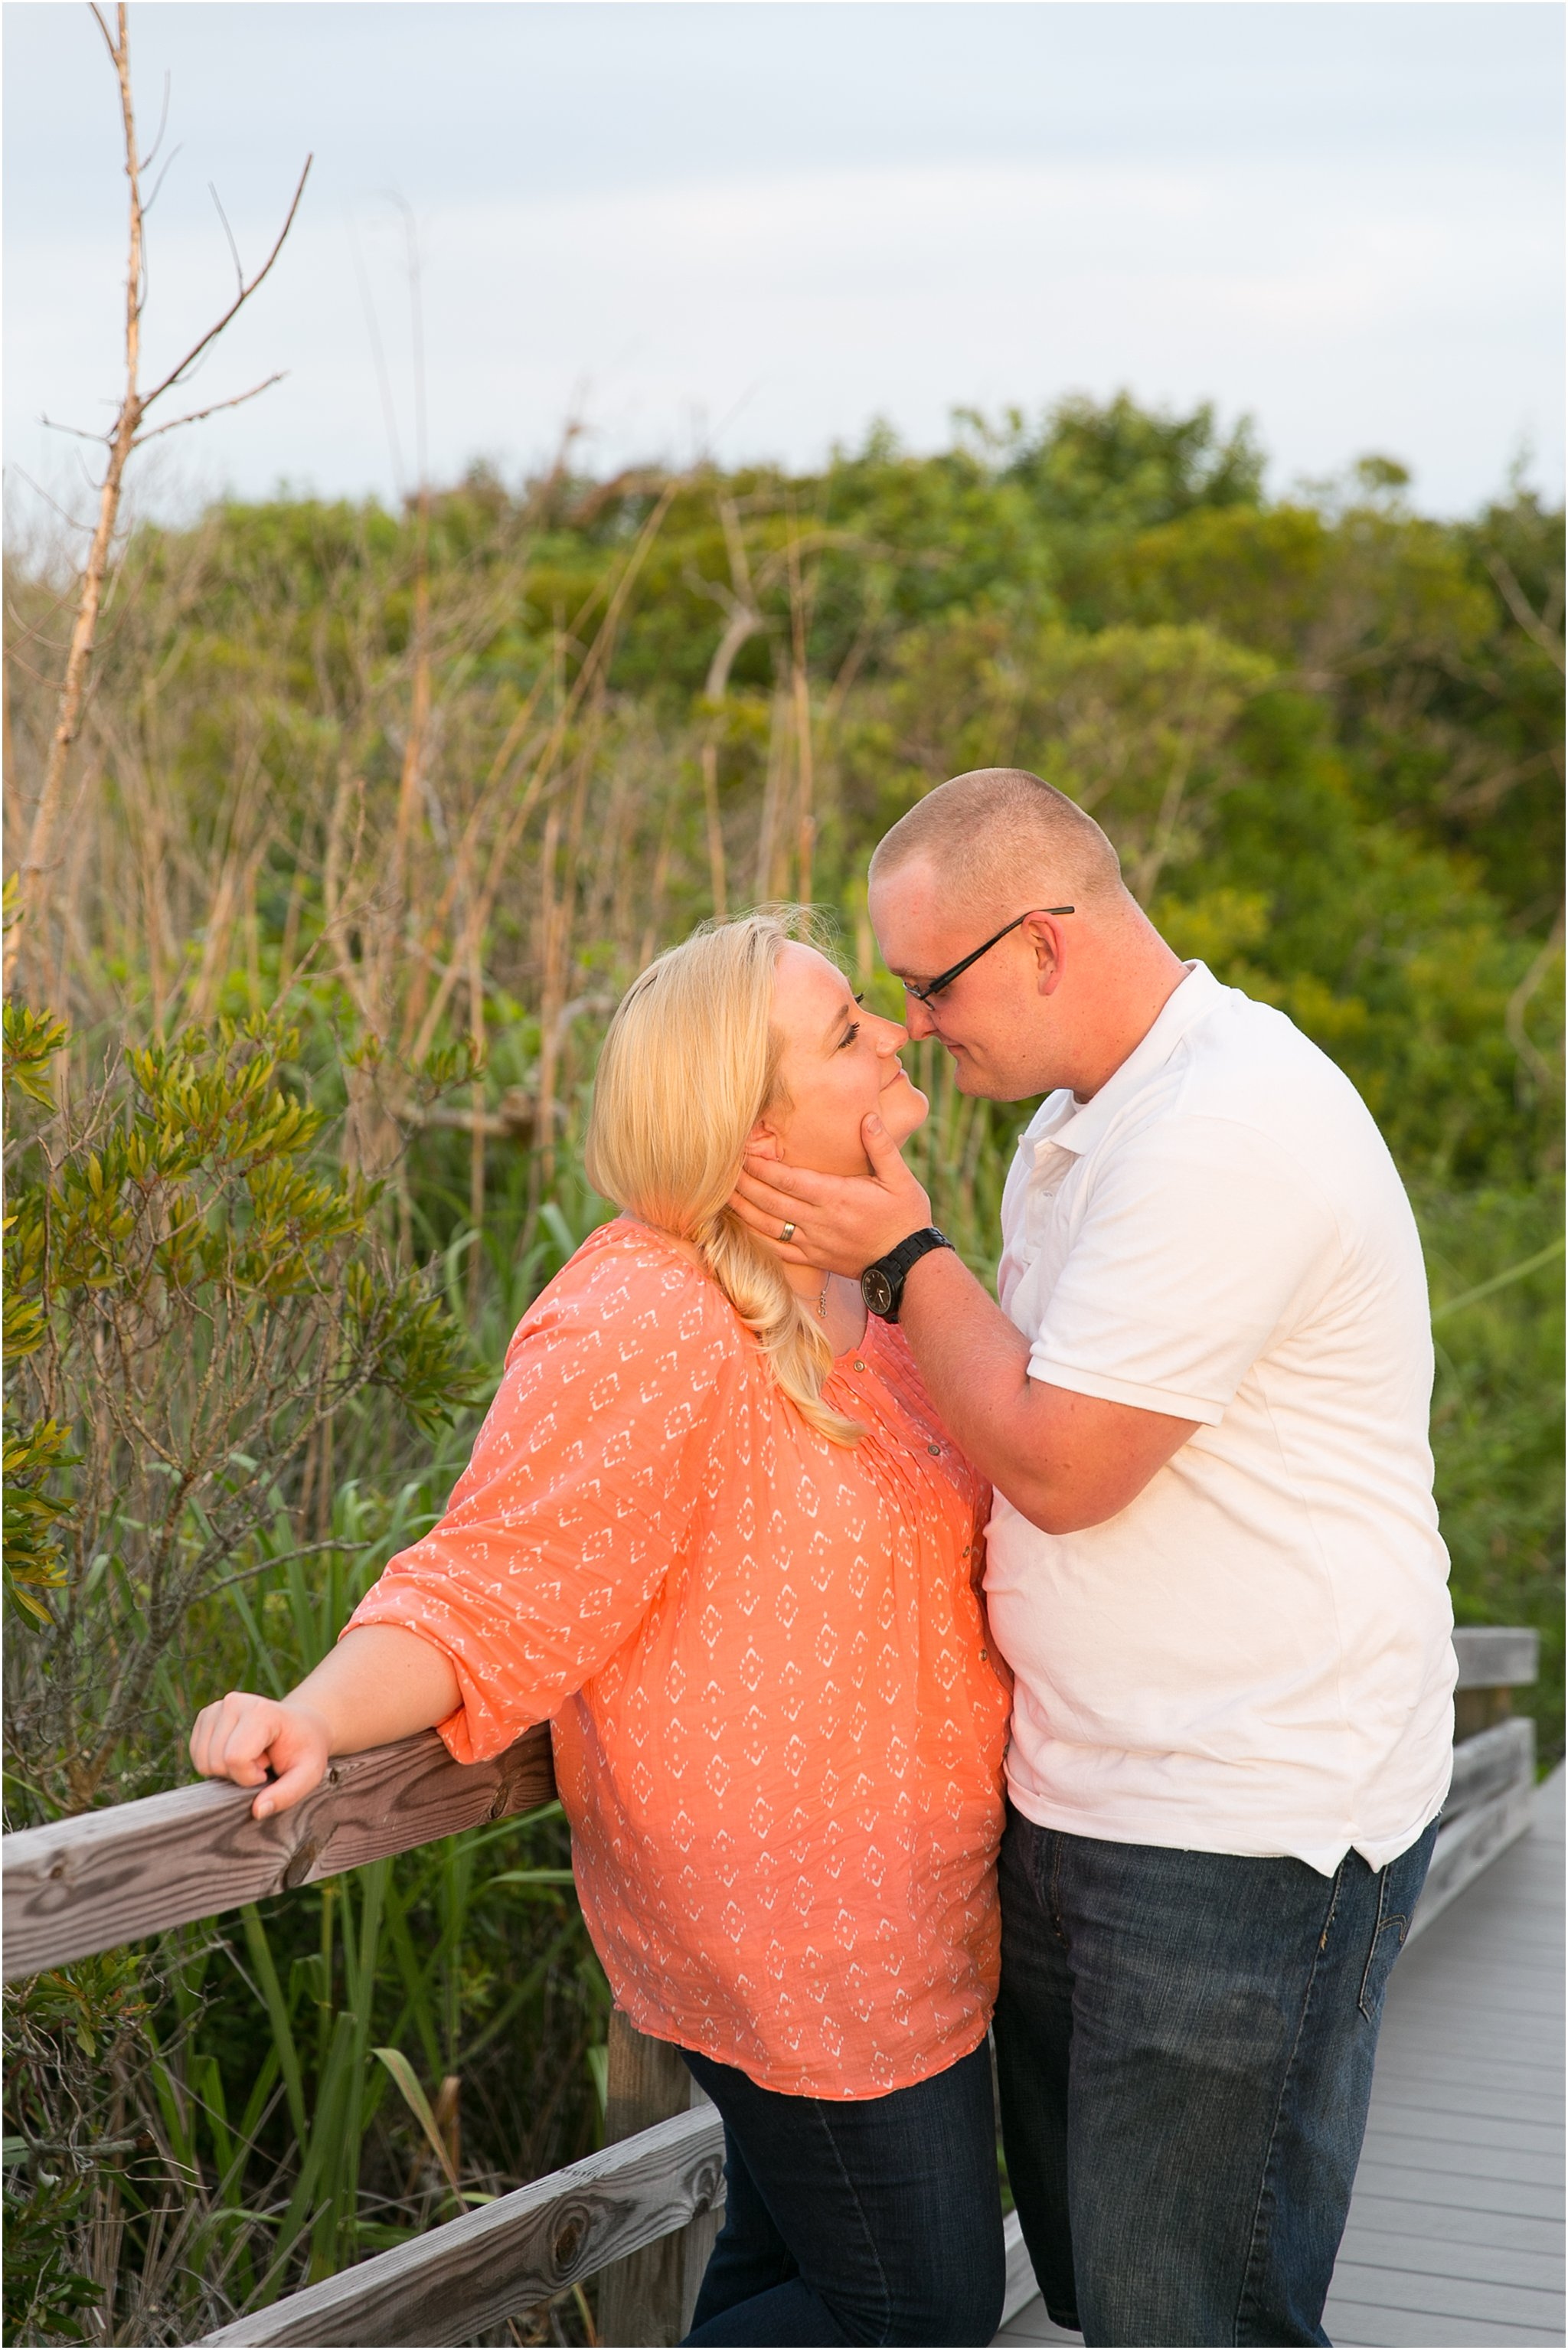 jessica_ryan_photography_virginia_beach_virginia_engagements_engagement_photographer_candid_1026